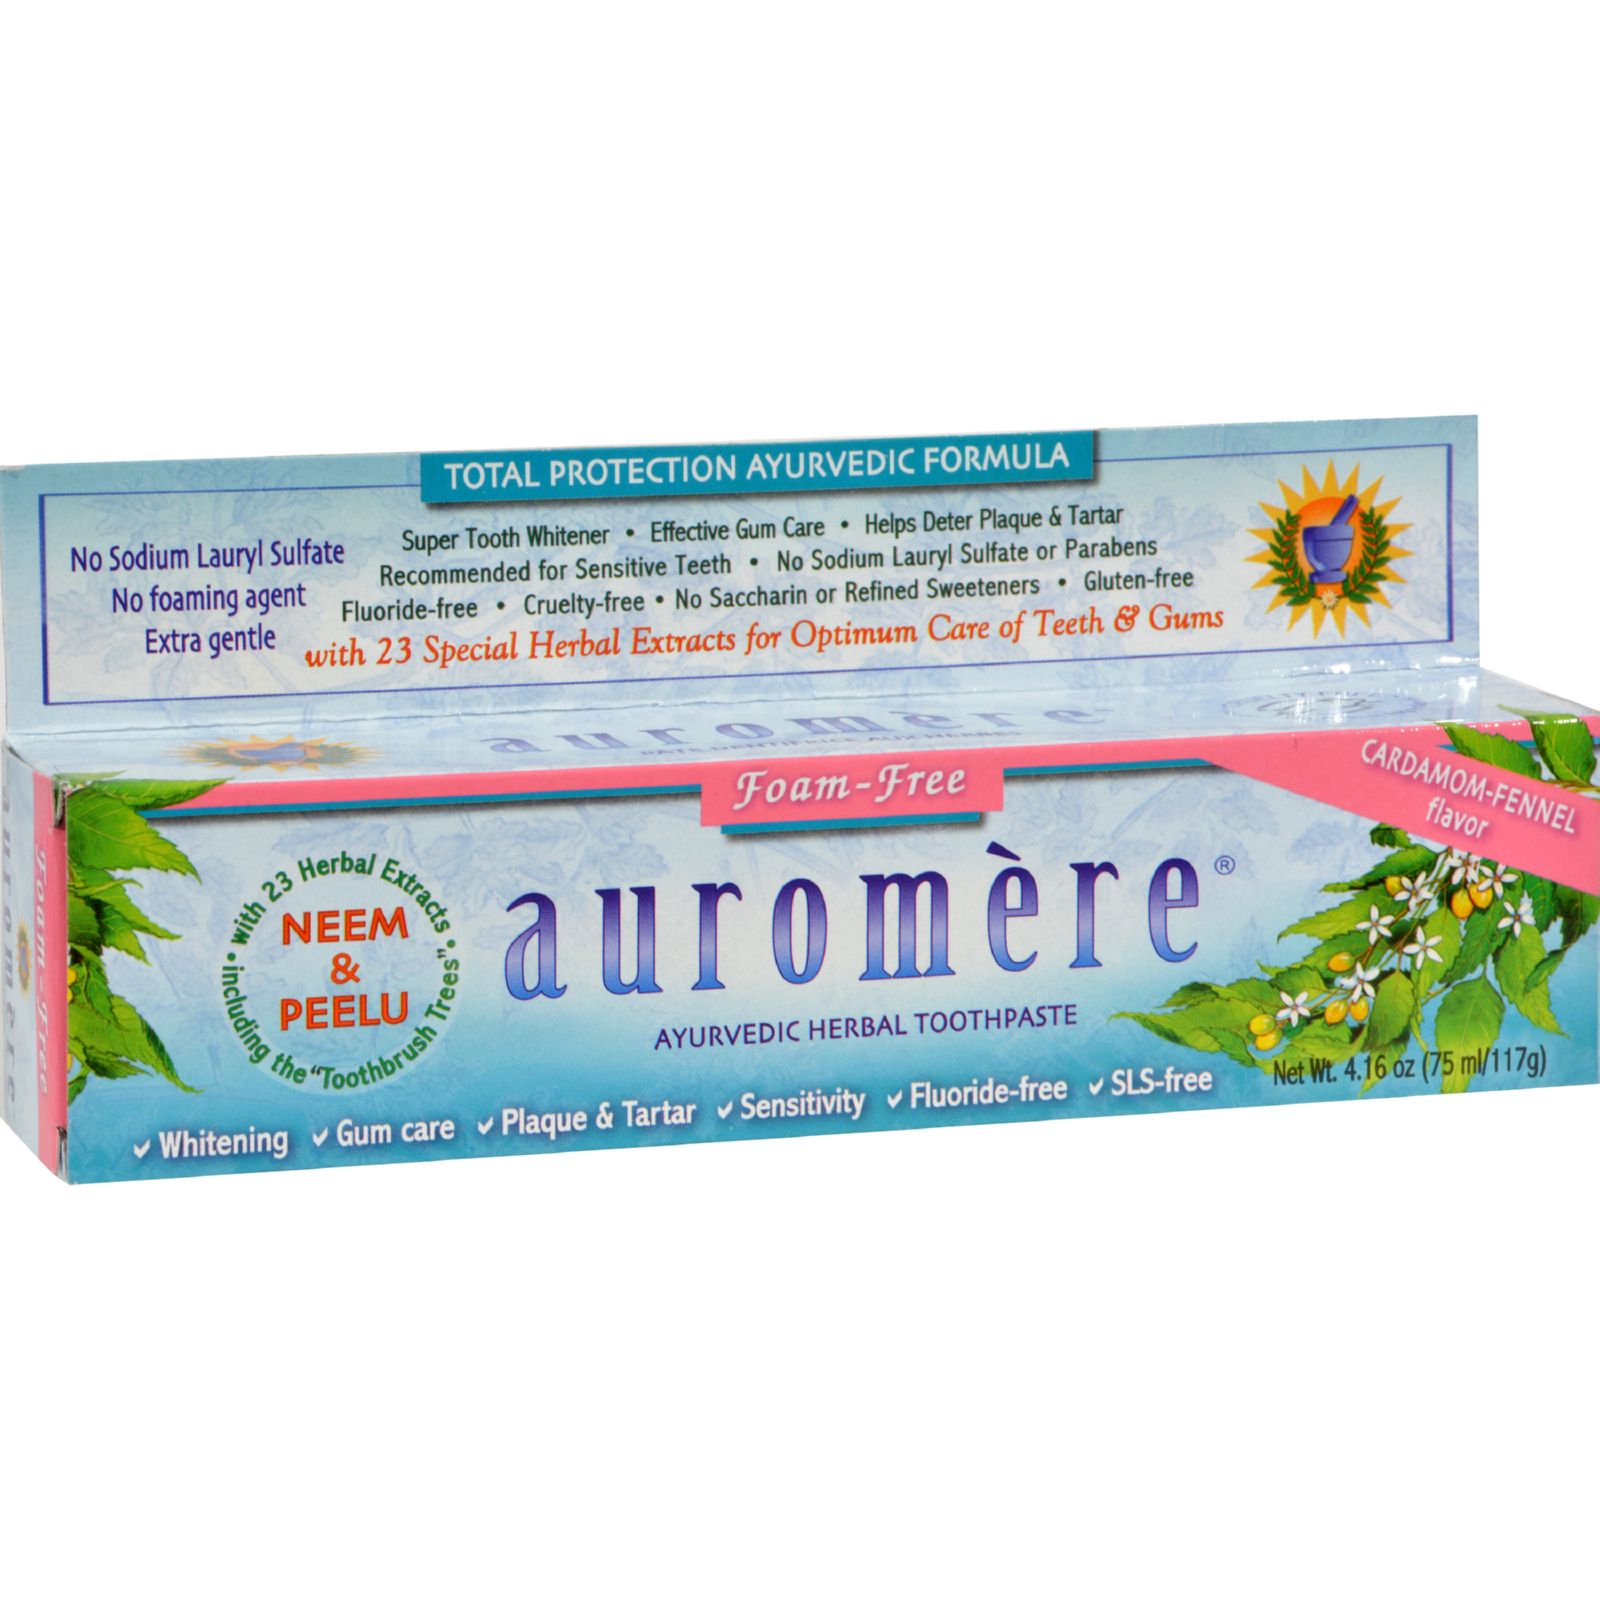 Auromere Ayurvedic Herbal Toothpaste Non Foaming Cardamom Fennel, 4.16 Oz